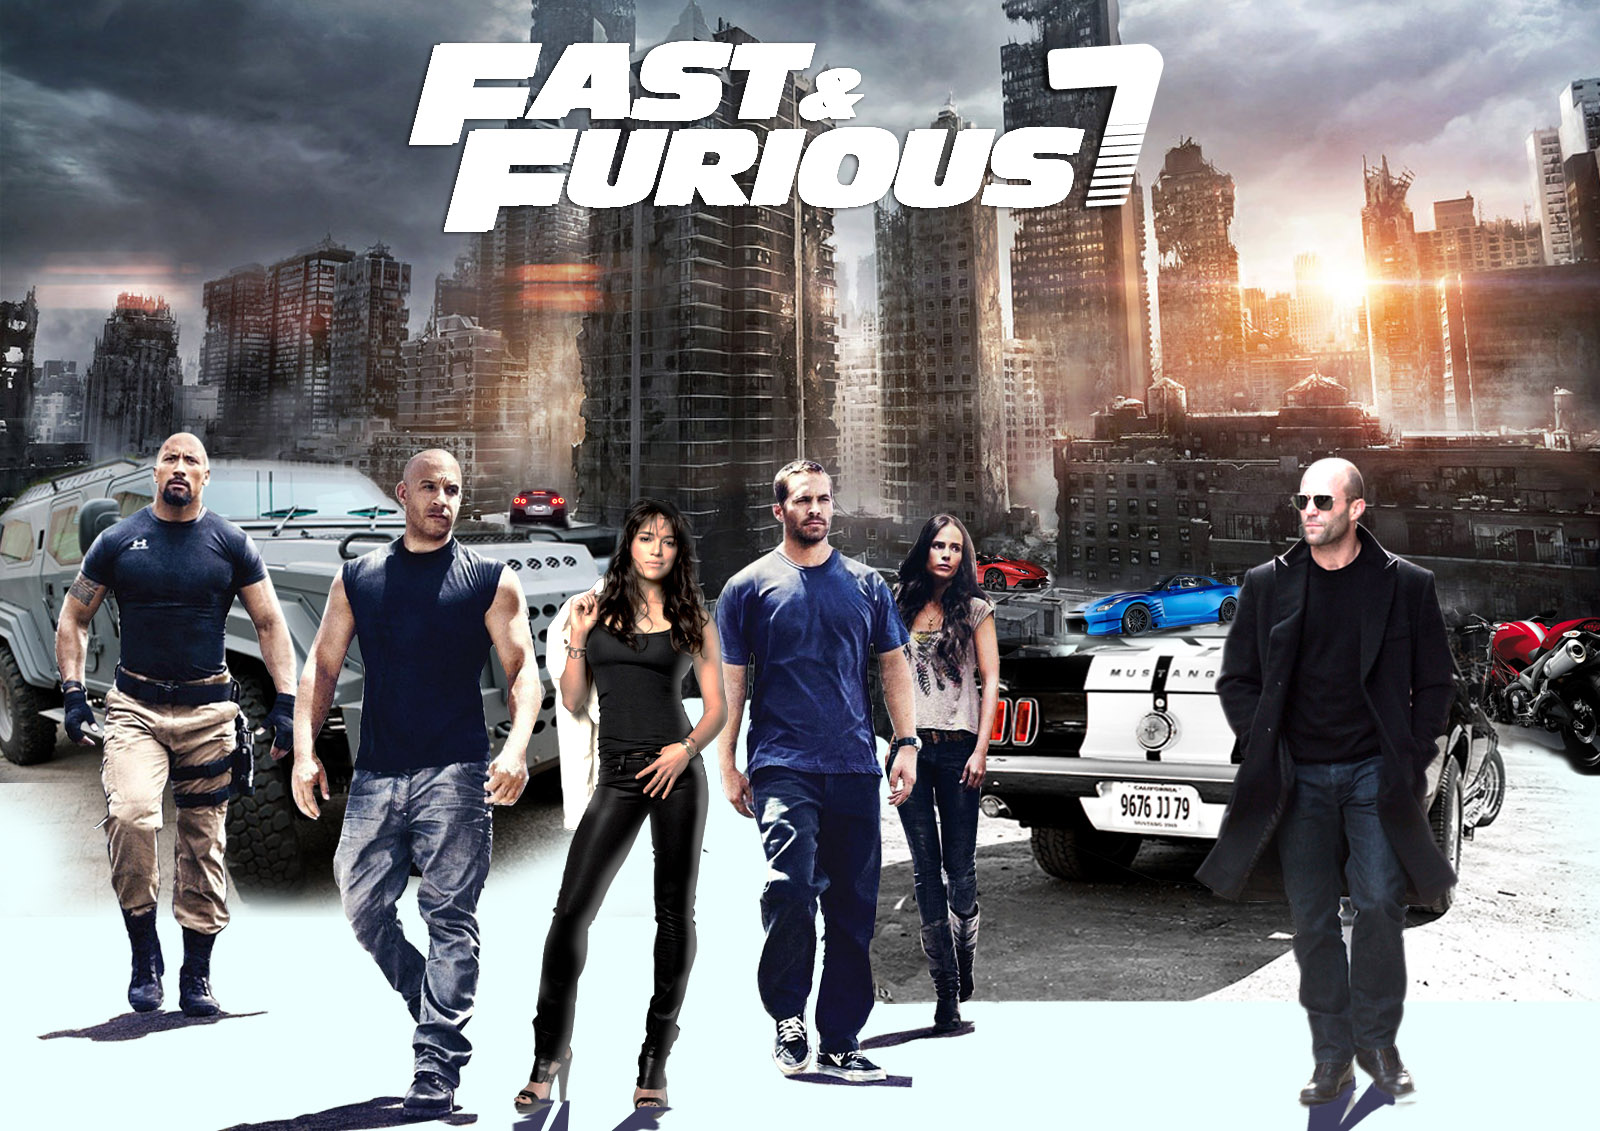 Download Fast And Furious 7 (2015) HDCAM Full Movie in Mp4 Wallpaper_4